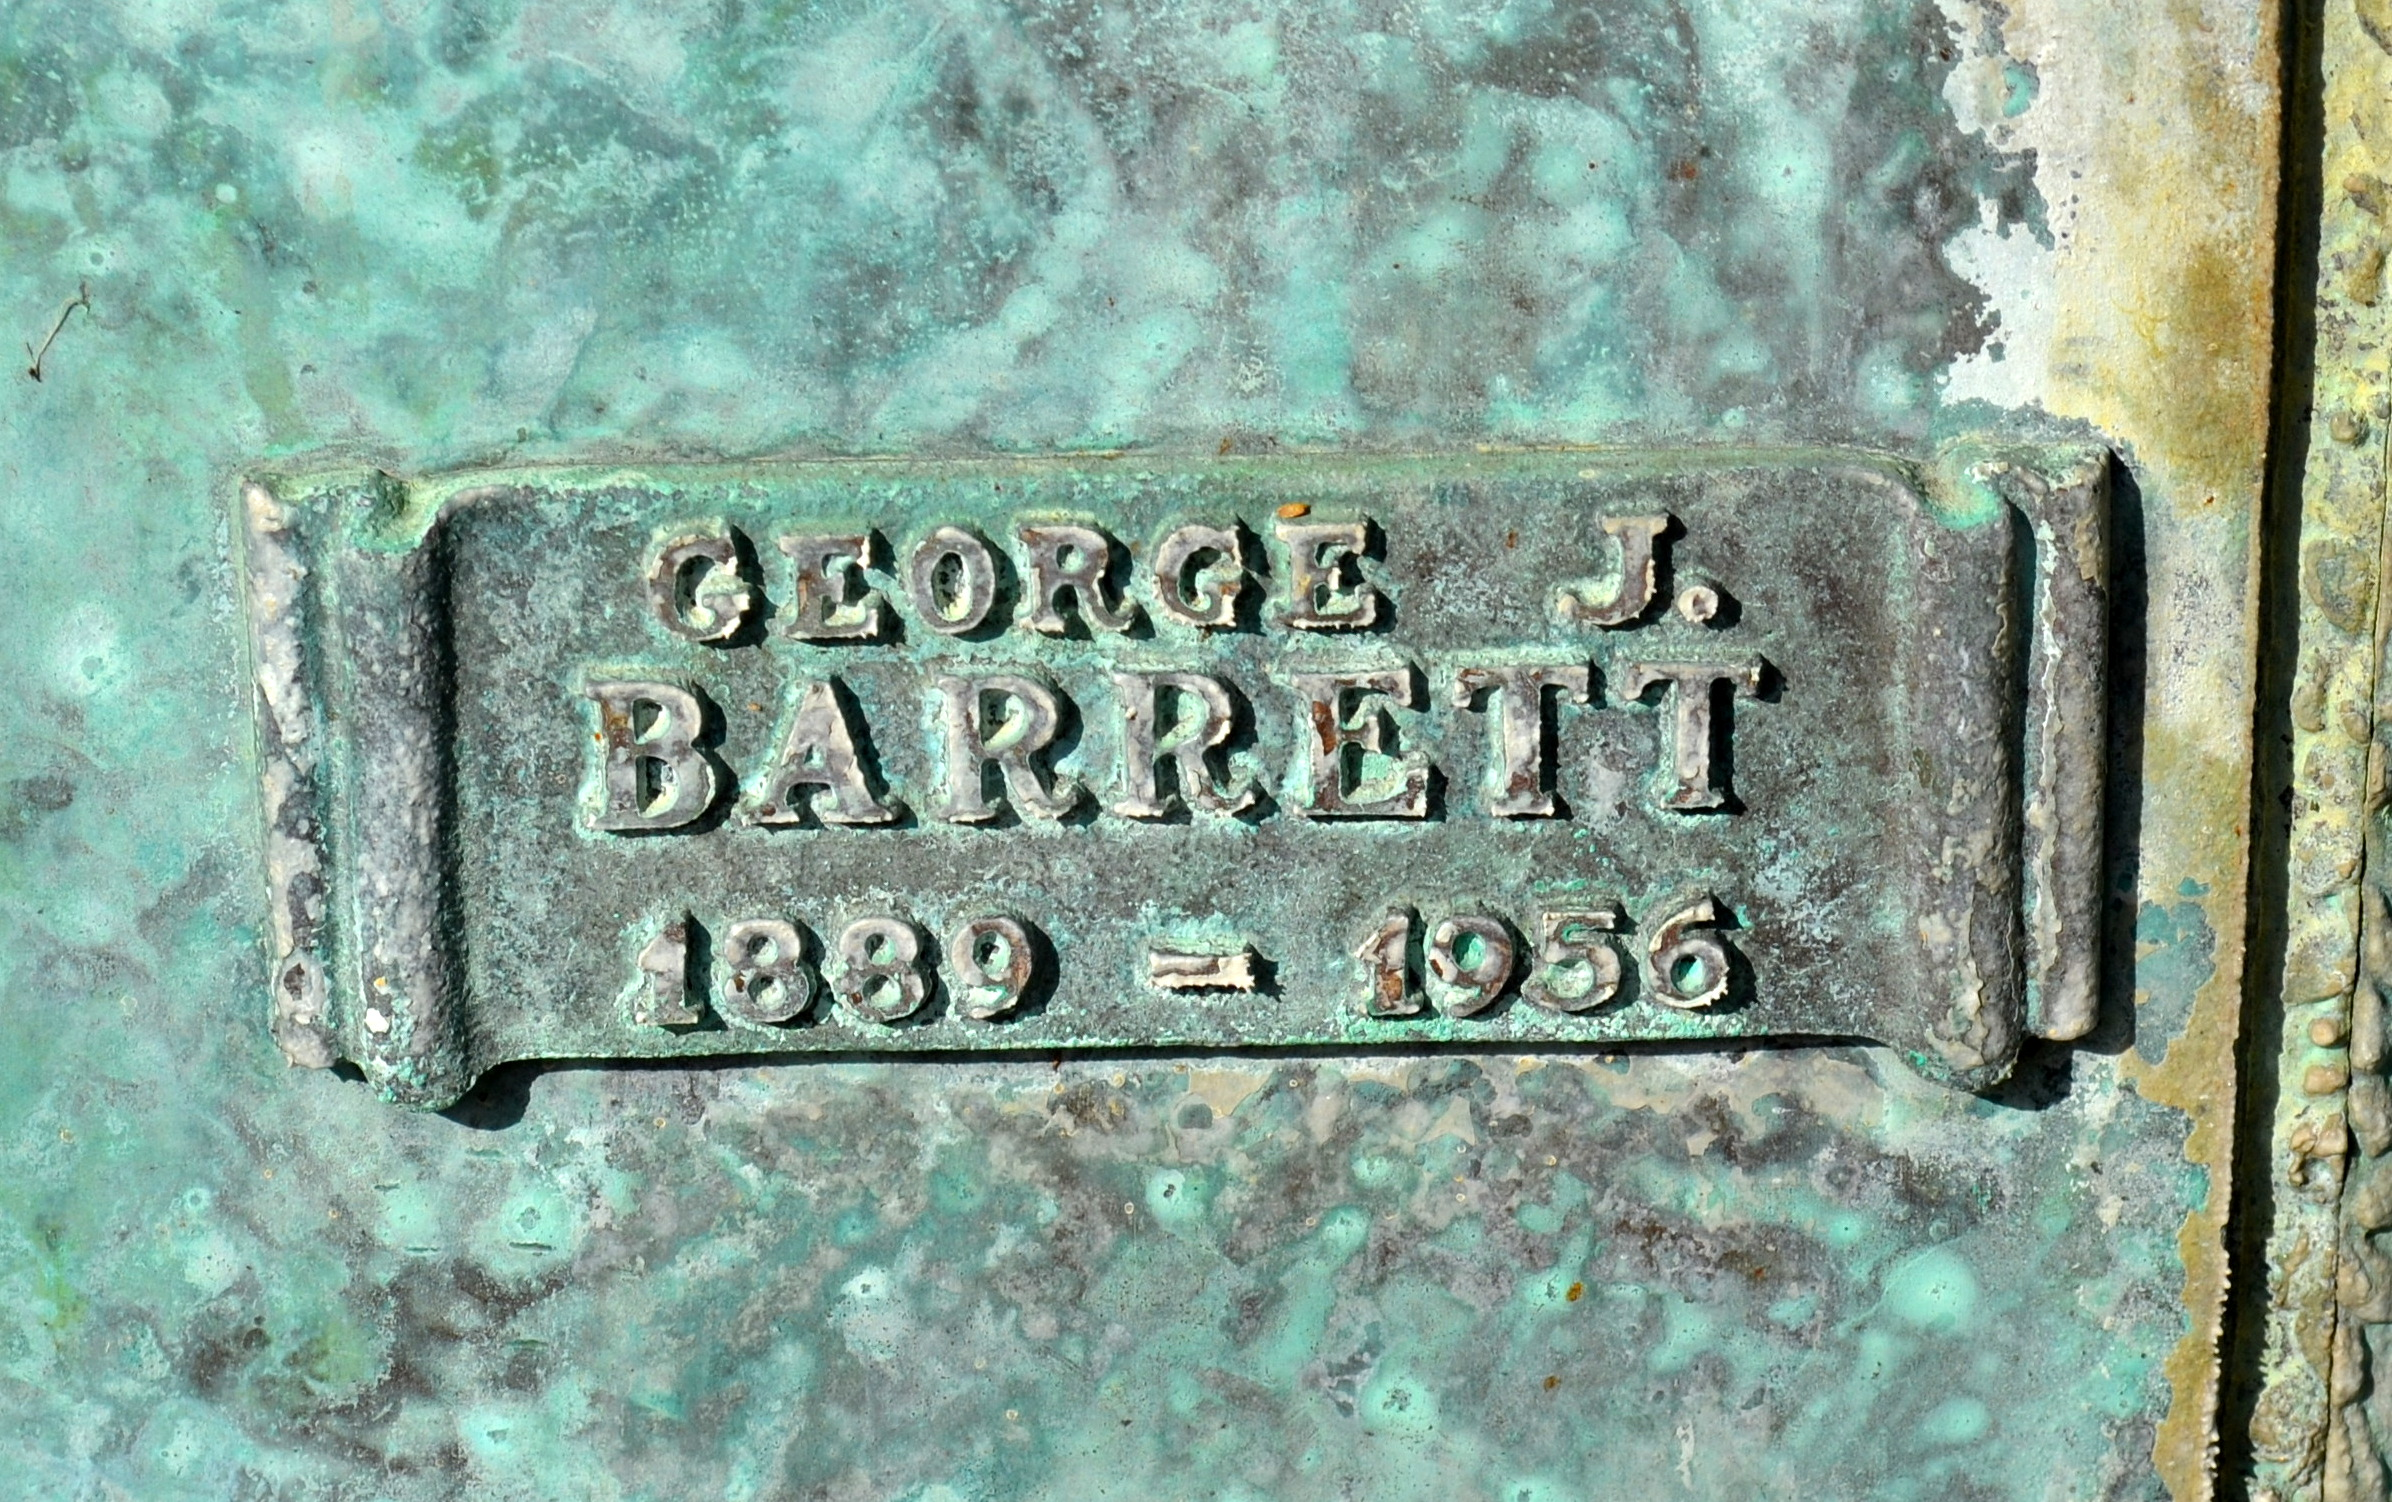 George J Barrett